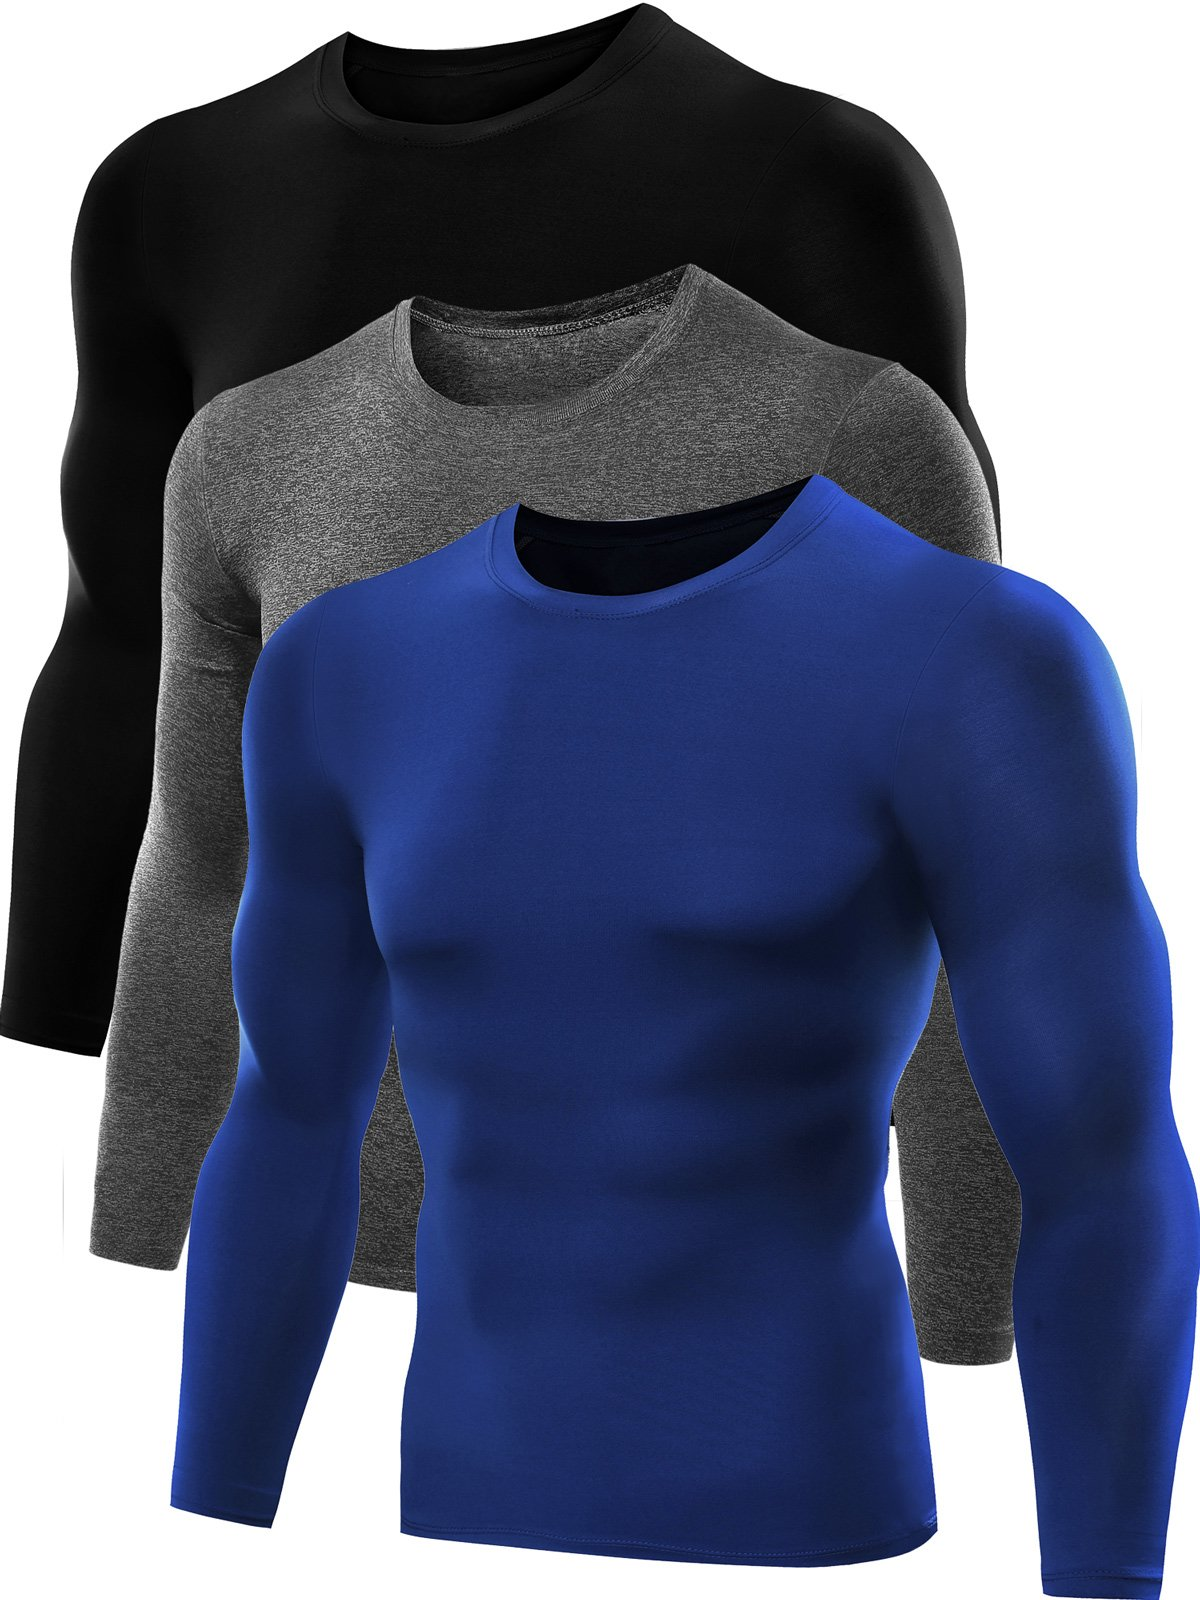 Neleus Men's Dry Fit Athletic Compression Shirts 3 Pack,5021,Blue,Black,Grey,US XL,EU 2XL by Neleus